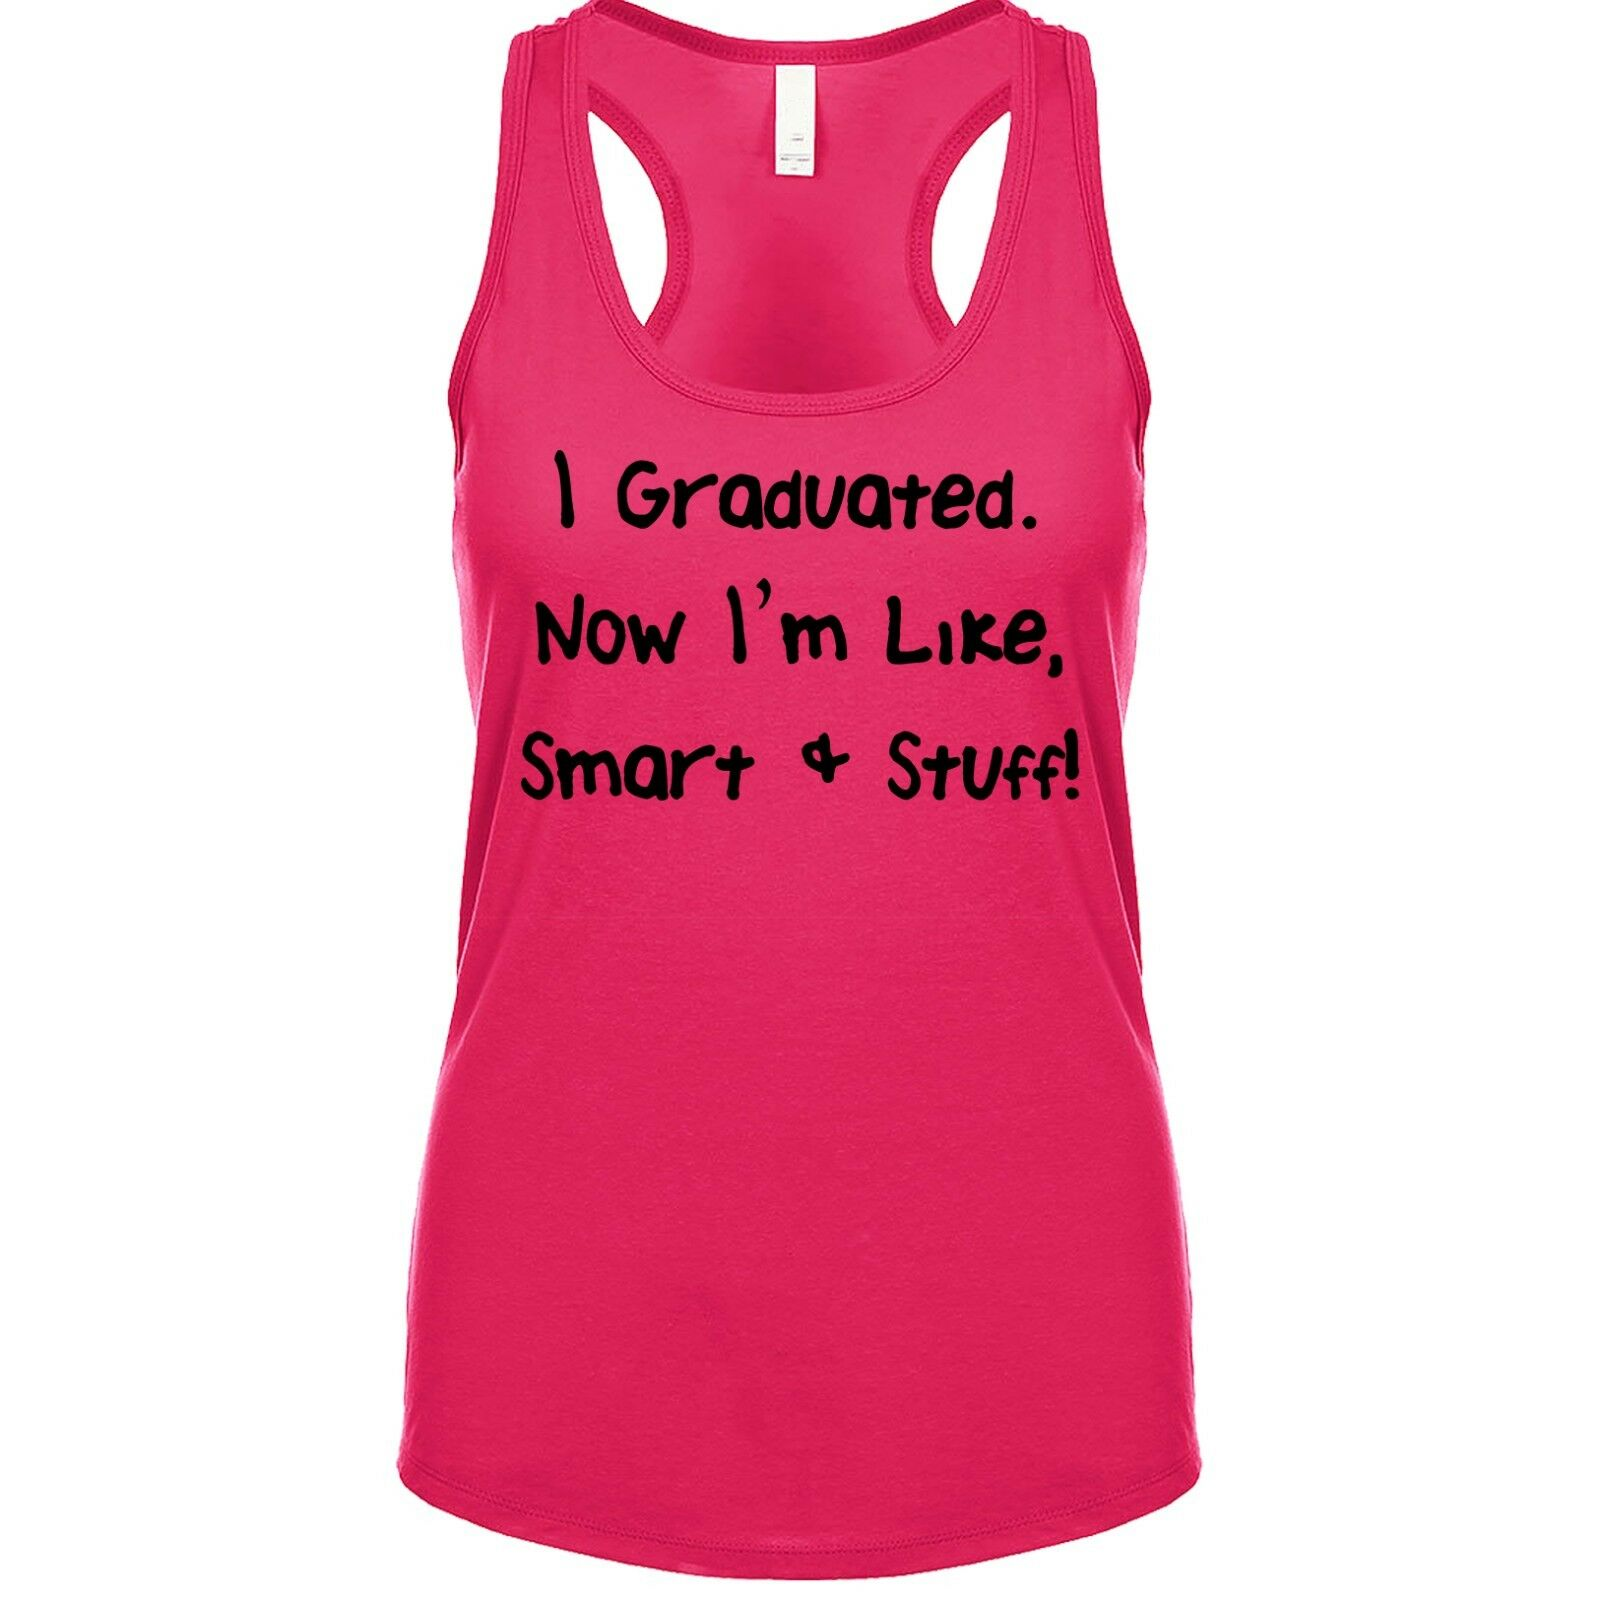 I GRADUATED ~ GREAT GRADUATION GIFT~BLACK T-SHIRT with PINK GLITTER SIZE S-XXL